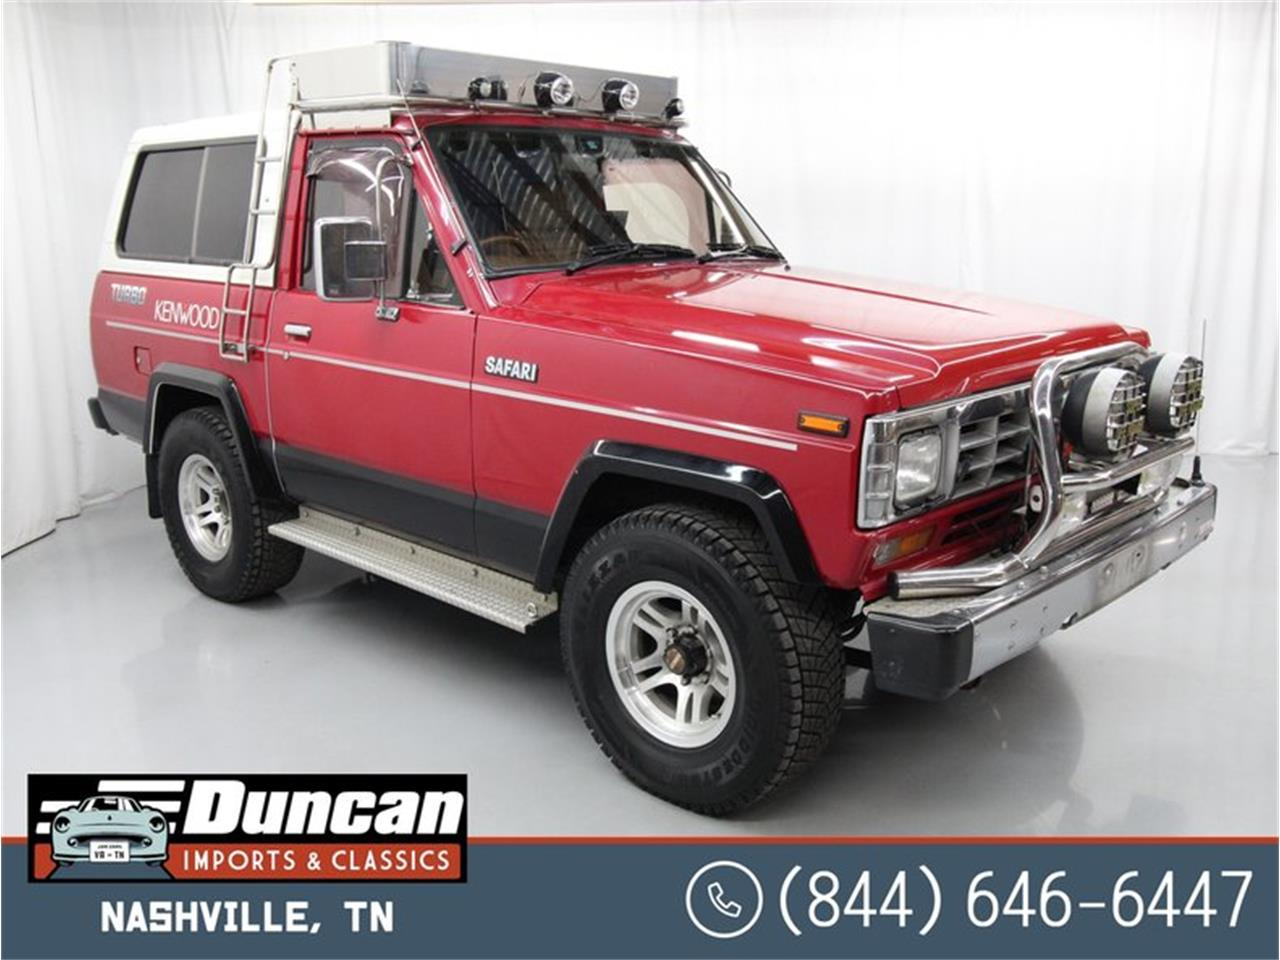 1986 Nissan Safari (CC-1387108) for sale in Christiansburg, Virginia